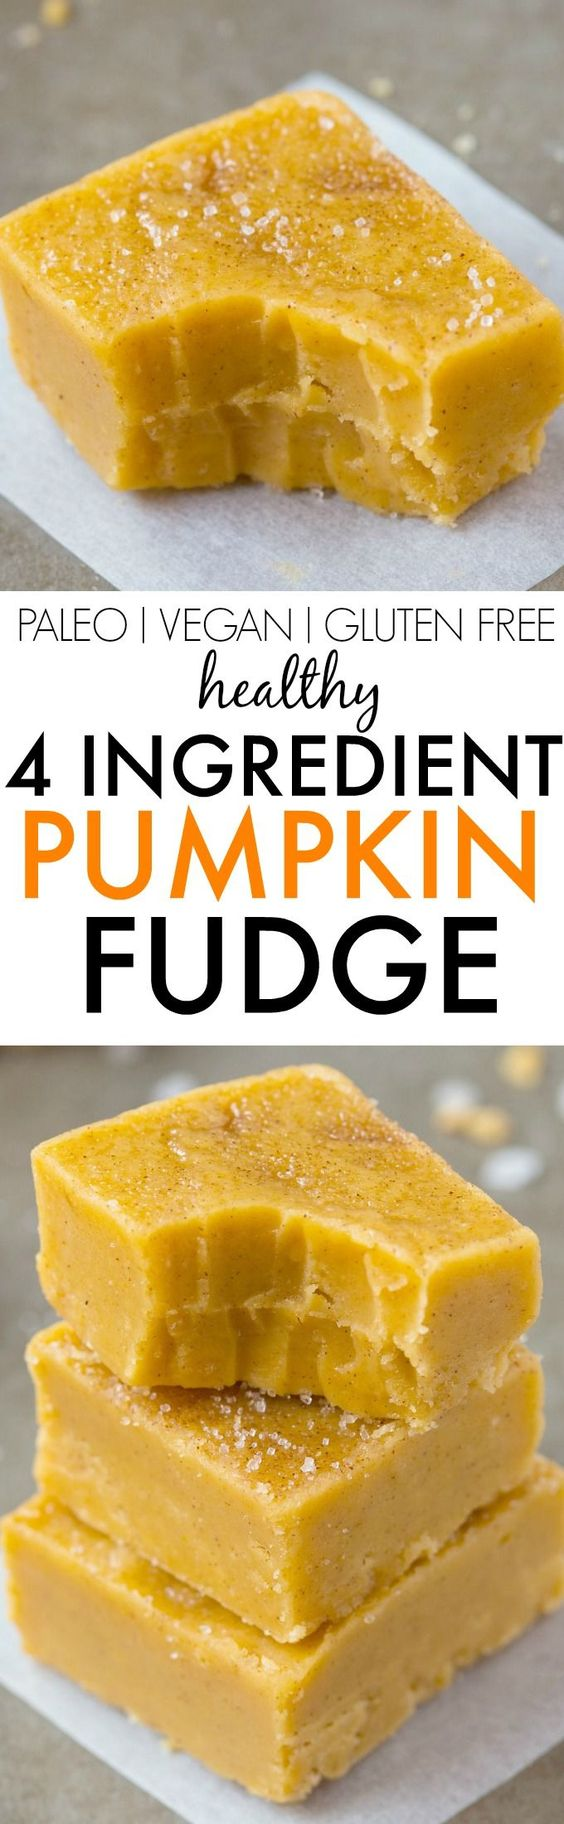 awesome Healthy 4 Ingredient Pumpkin Fudge- Smooth, creamy and ready in minutes, this se...